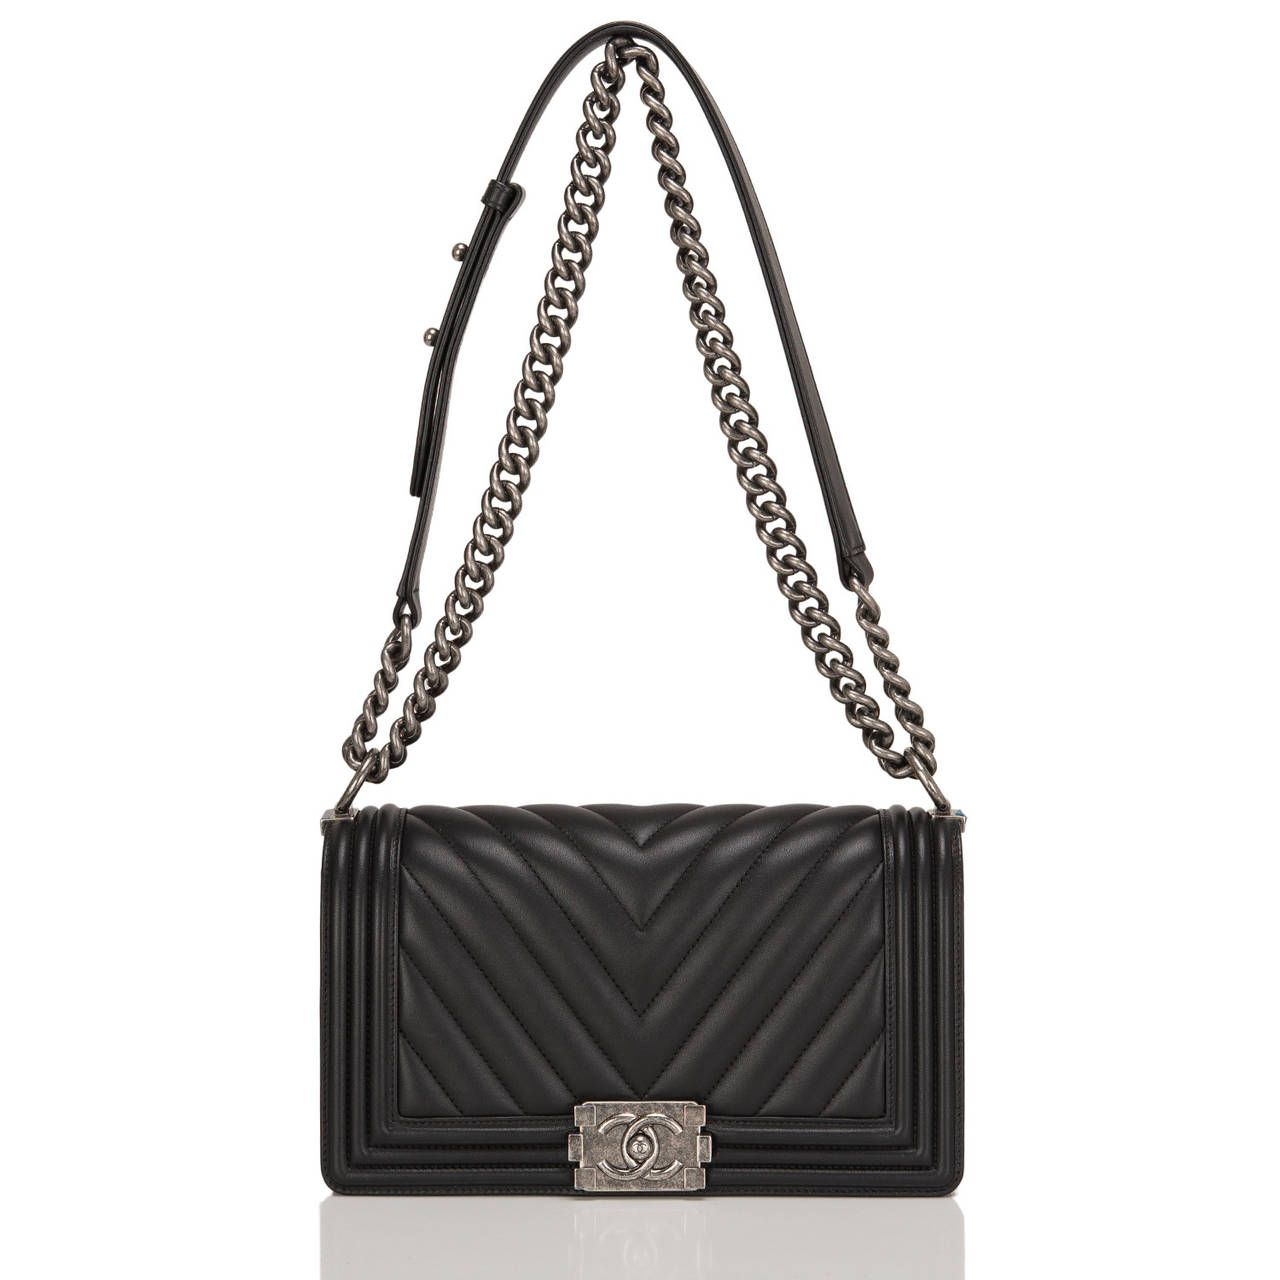 819353578815ef Chanel Black Chevron Medium Boy Bag | From a collection of rare vintage  shoulder bags at